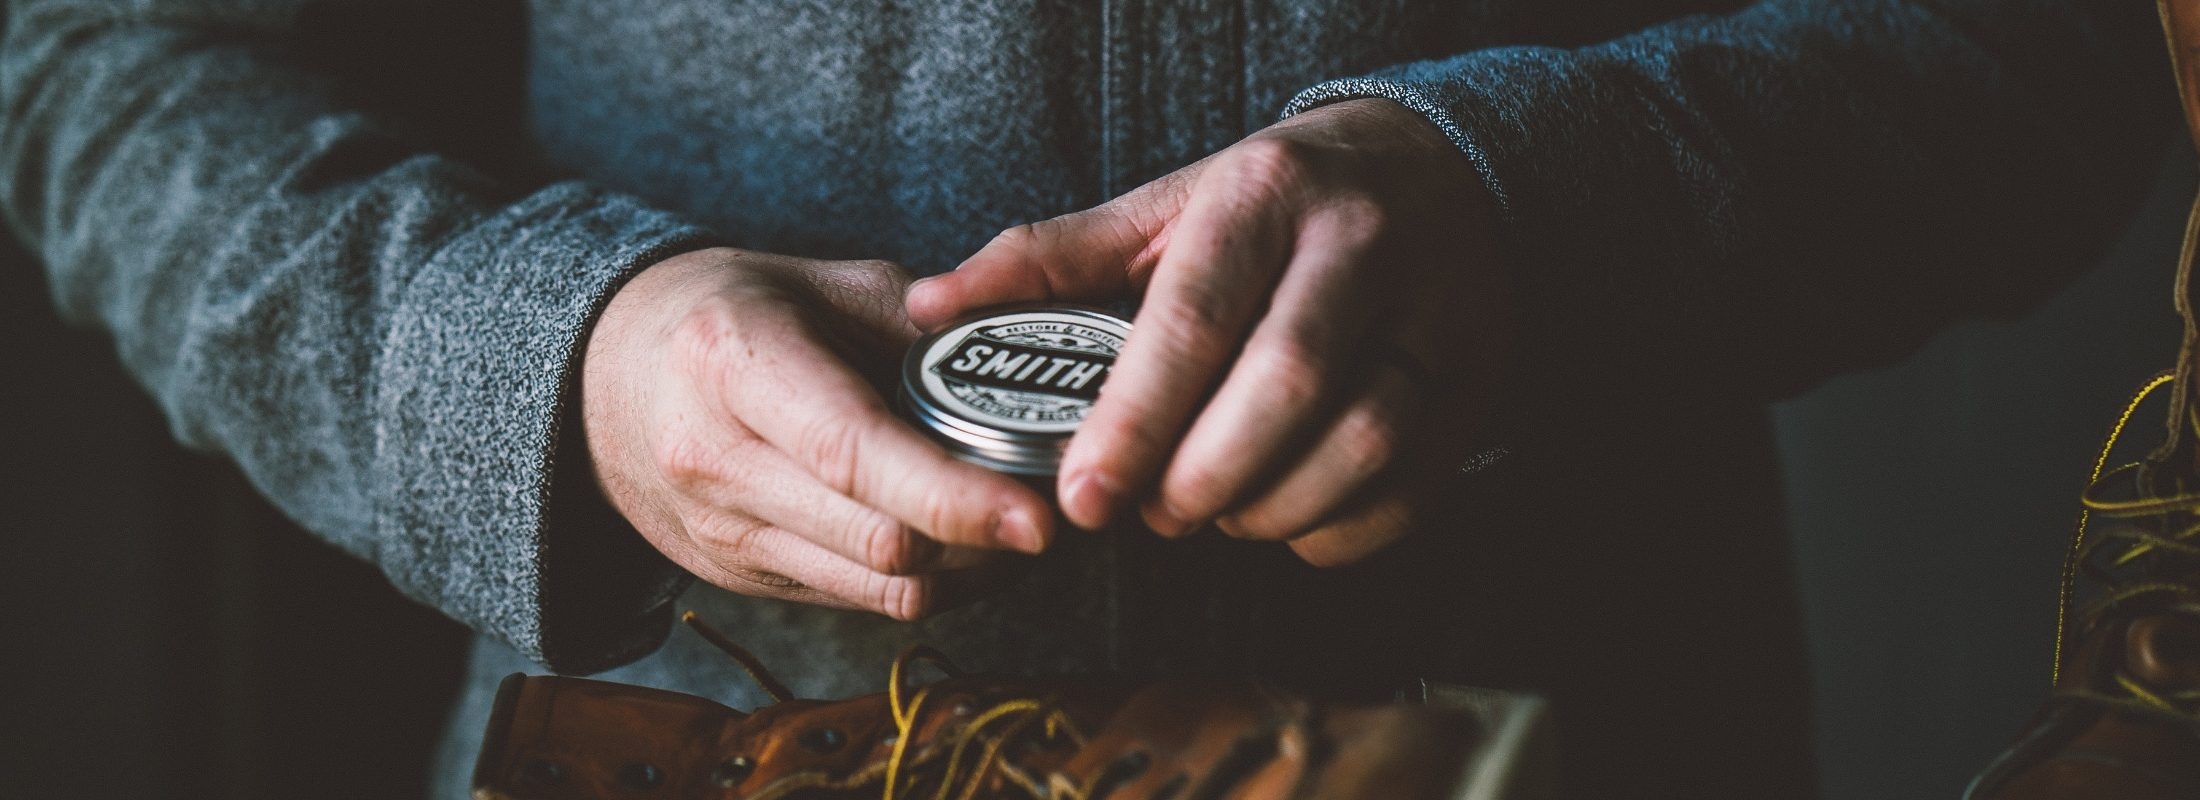 Smith's Leather Balm handmade balm